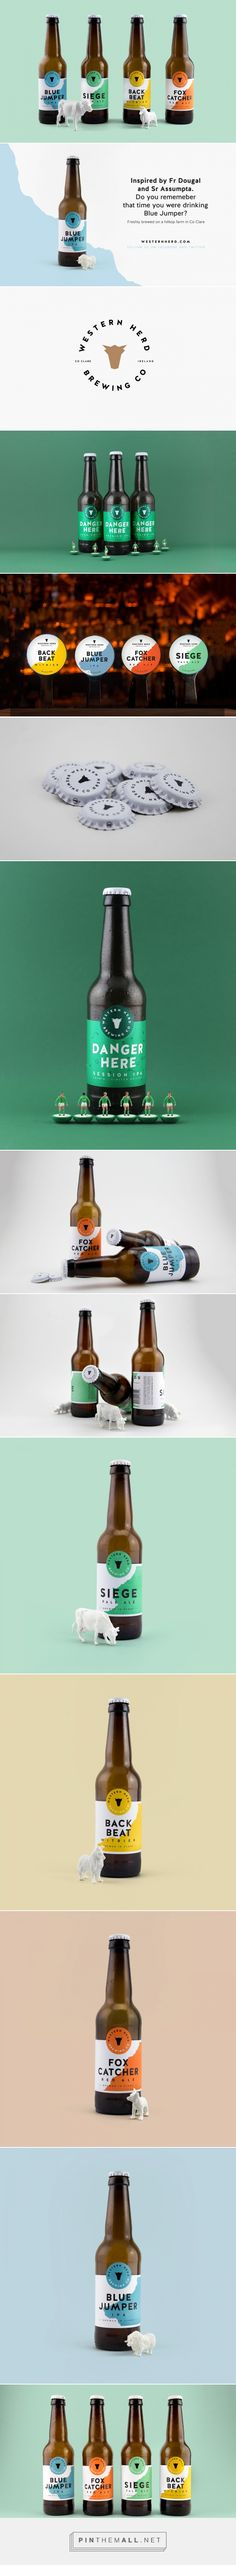 Western Herd Brewing Company beer labels design by Vincent Casey (Ireland) - http://www.packagingoftheworld.com/2016/07/western-herd-brewing-company.html